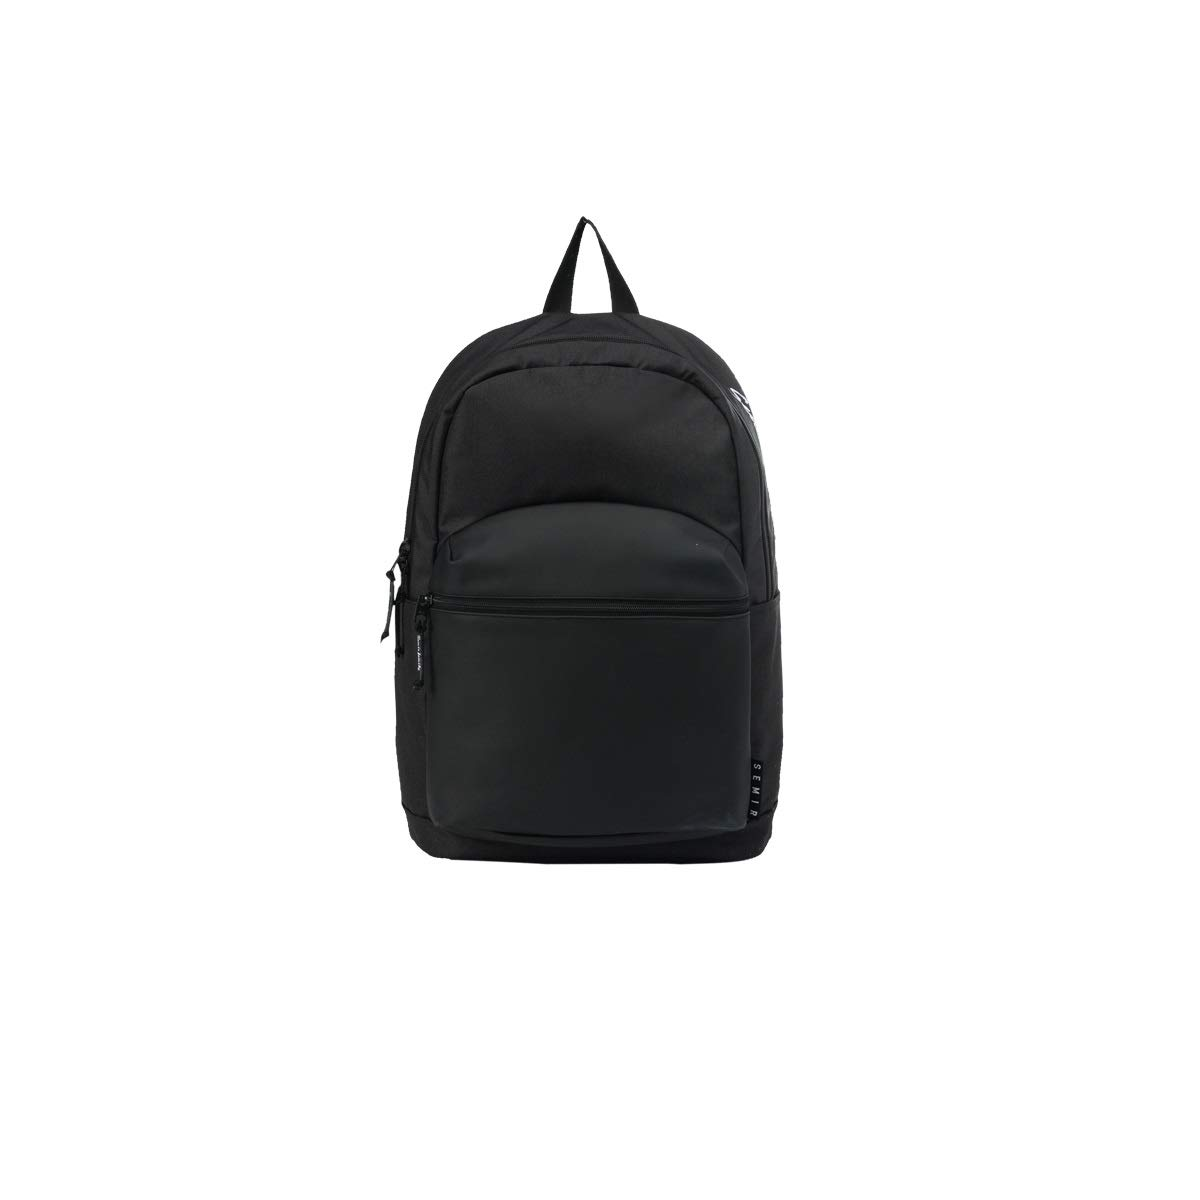 TONGBOSHI Backpack Male, Simple Casual Travel Bag Female, Business Function Computer Bag Student Bag Female Backpack (Color : 1)